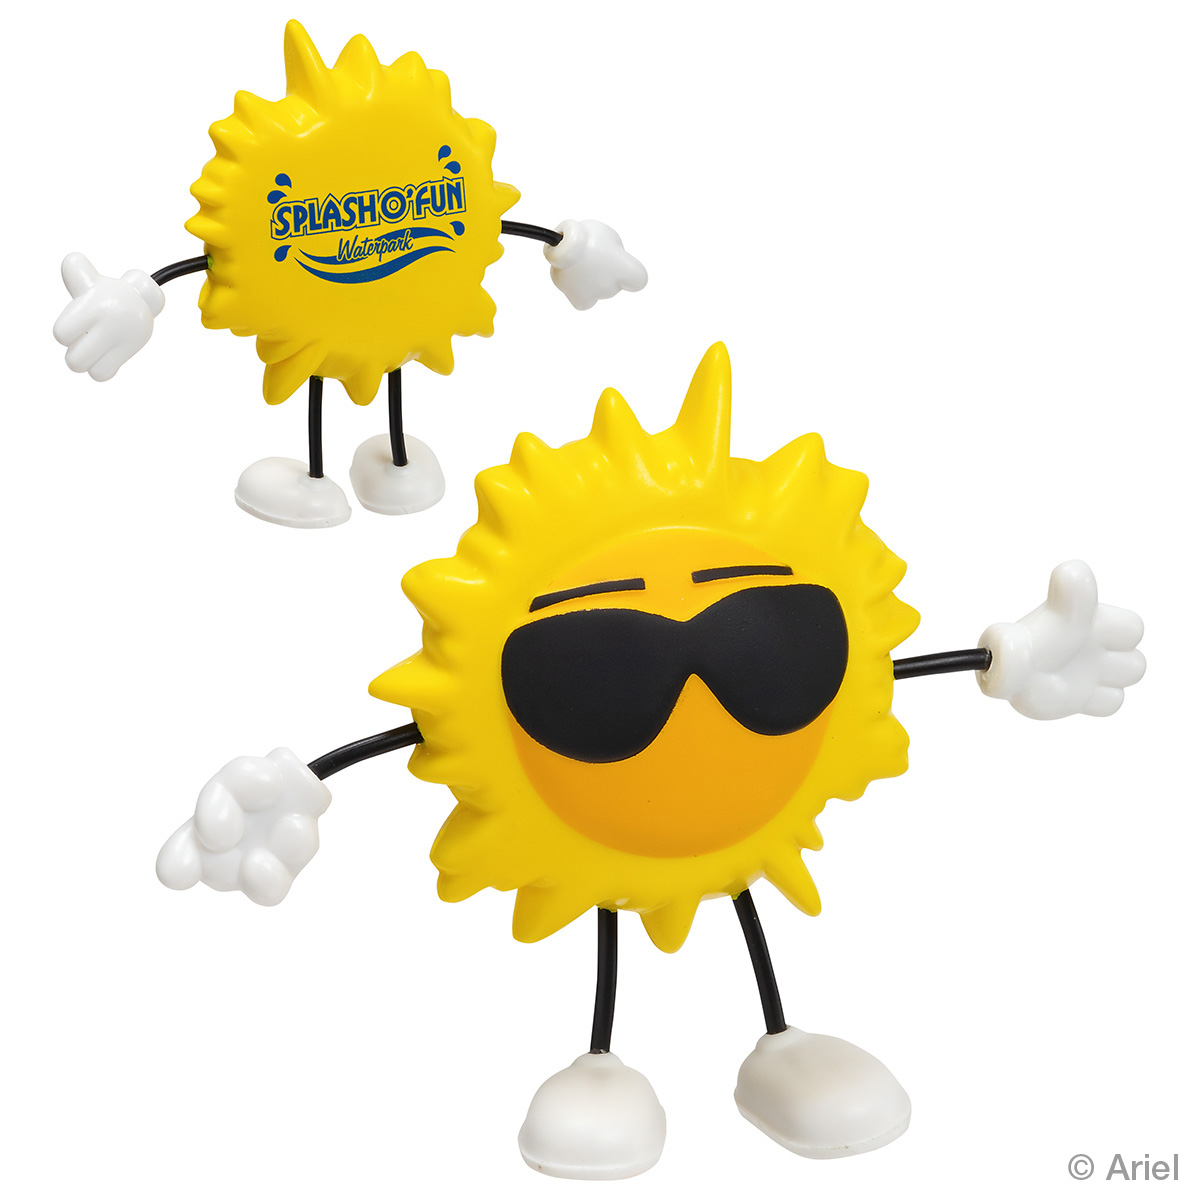 Cool Sun Figure Stress Reliever, LCH-CS01 - 1 Colour Imprint